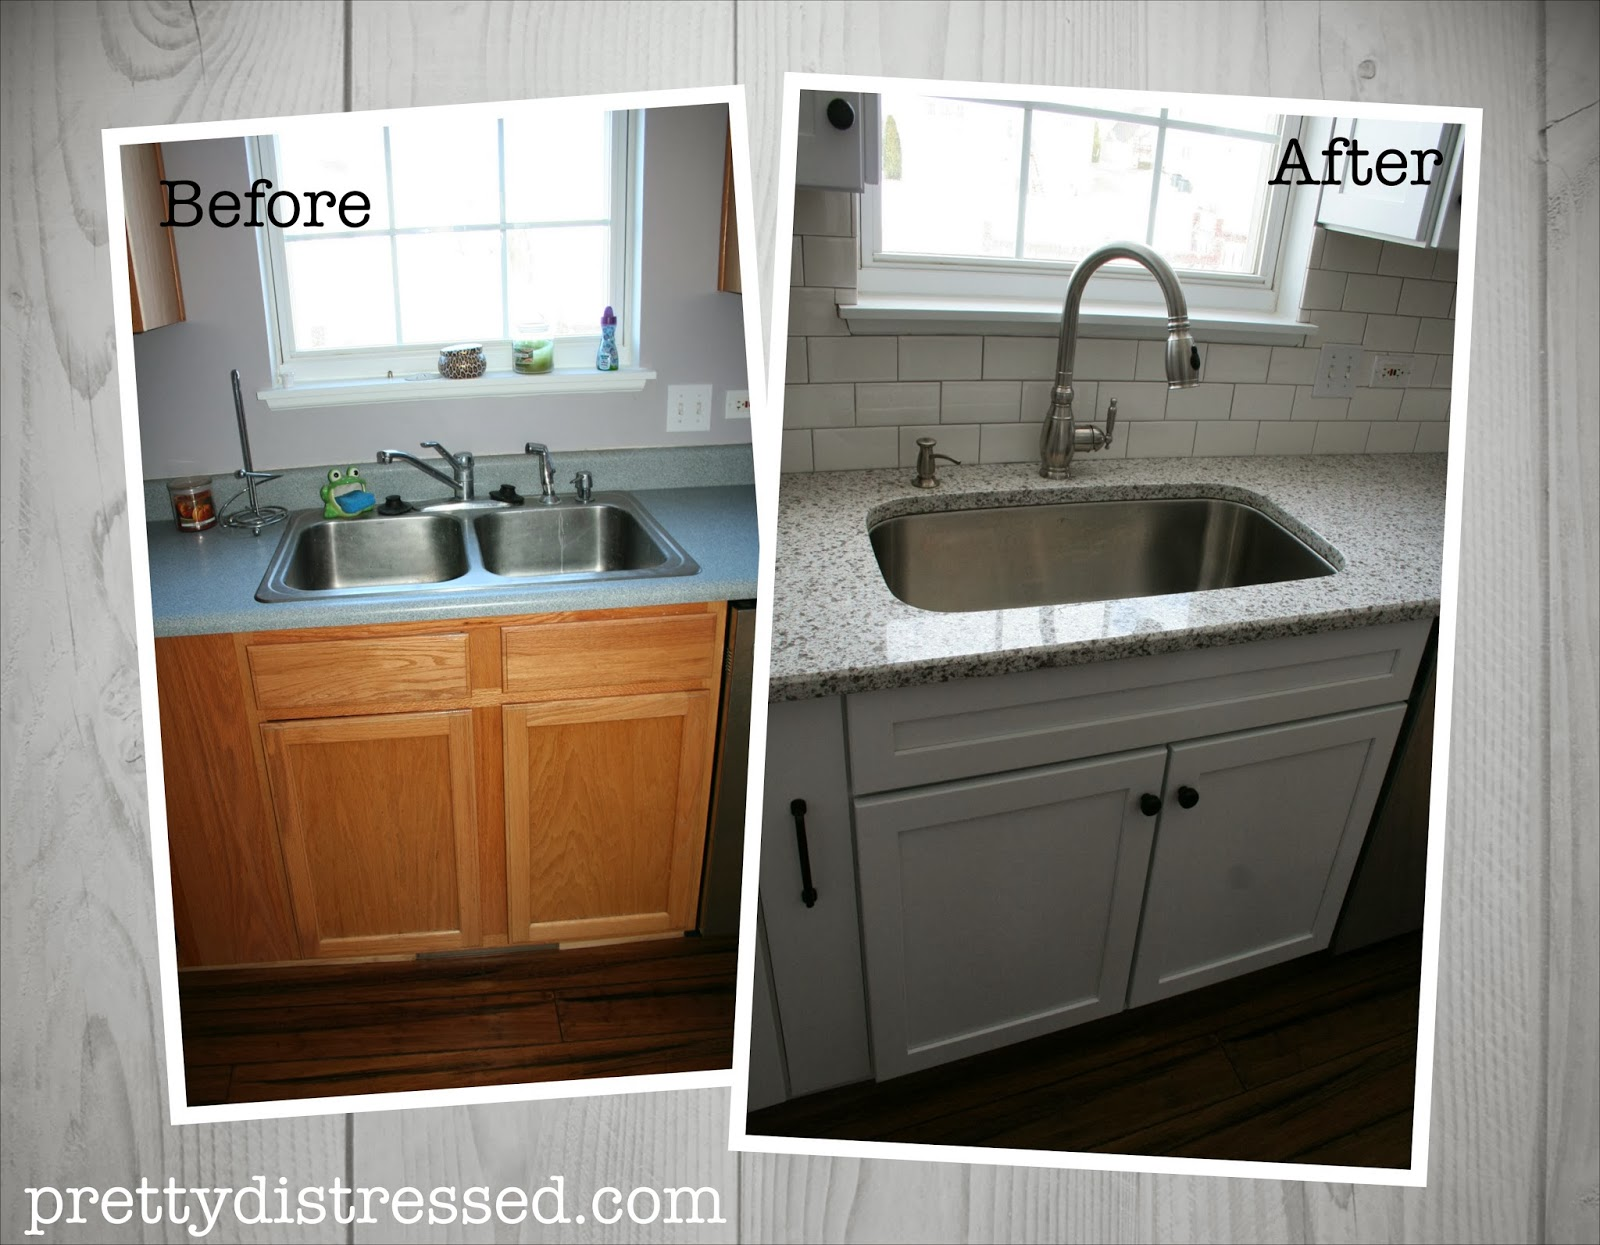 pretty distressed the great remodel kitchen before and after pics